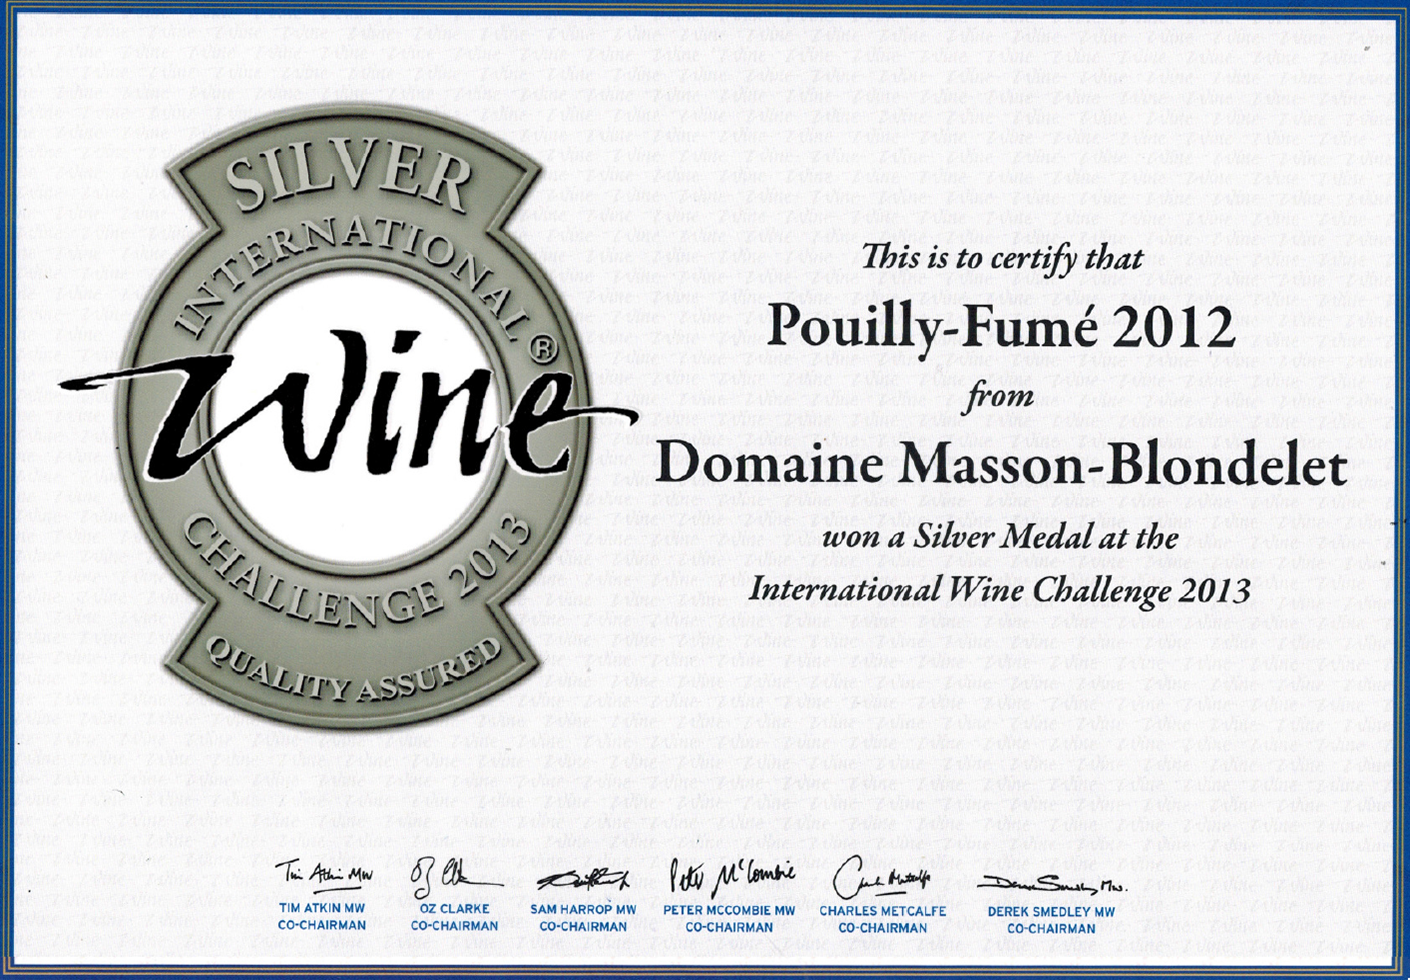 Domaine Masson-Blondelet - International Wine Challenge 2013 - Médaille d'Argent